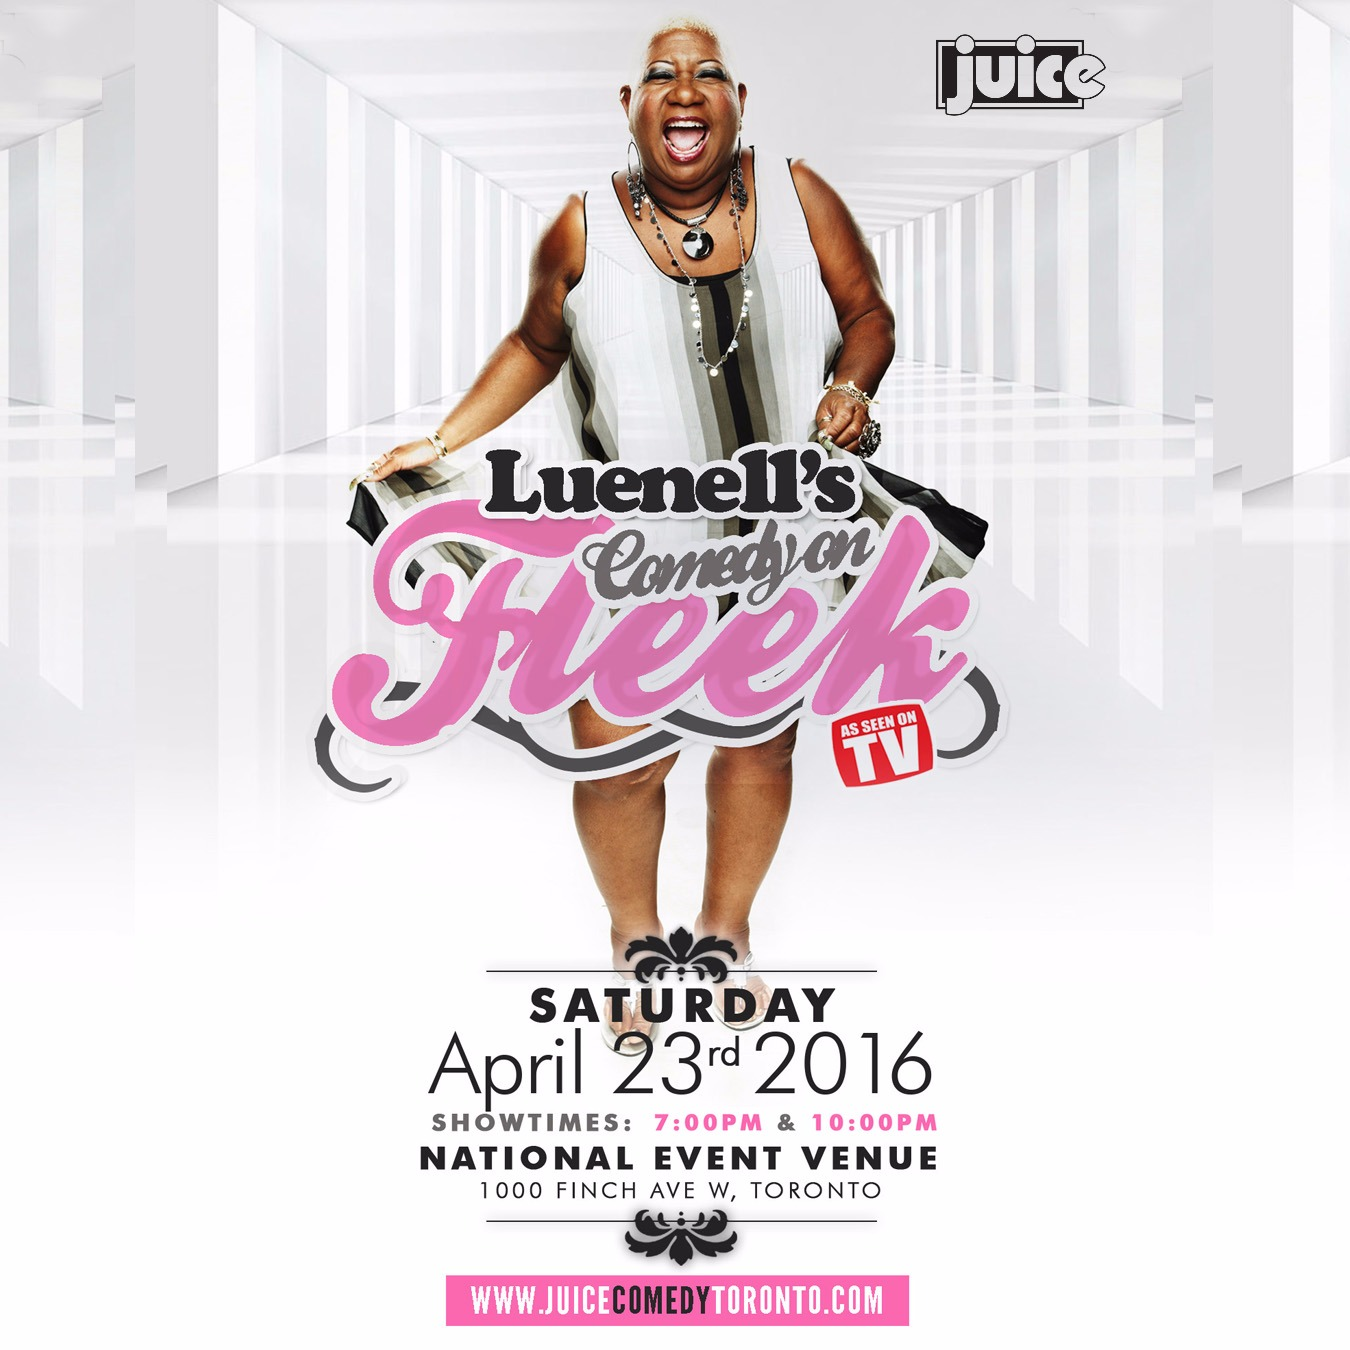 Luenell's Comedy On Fleek in Toronto | 6:00PM (Early Show)